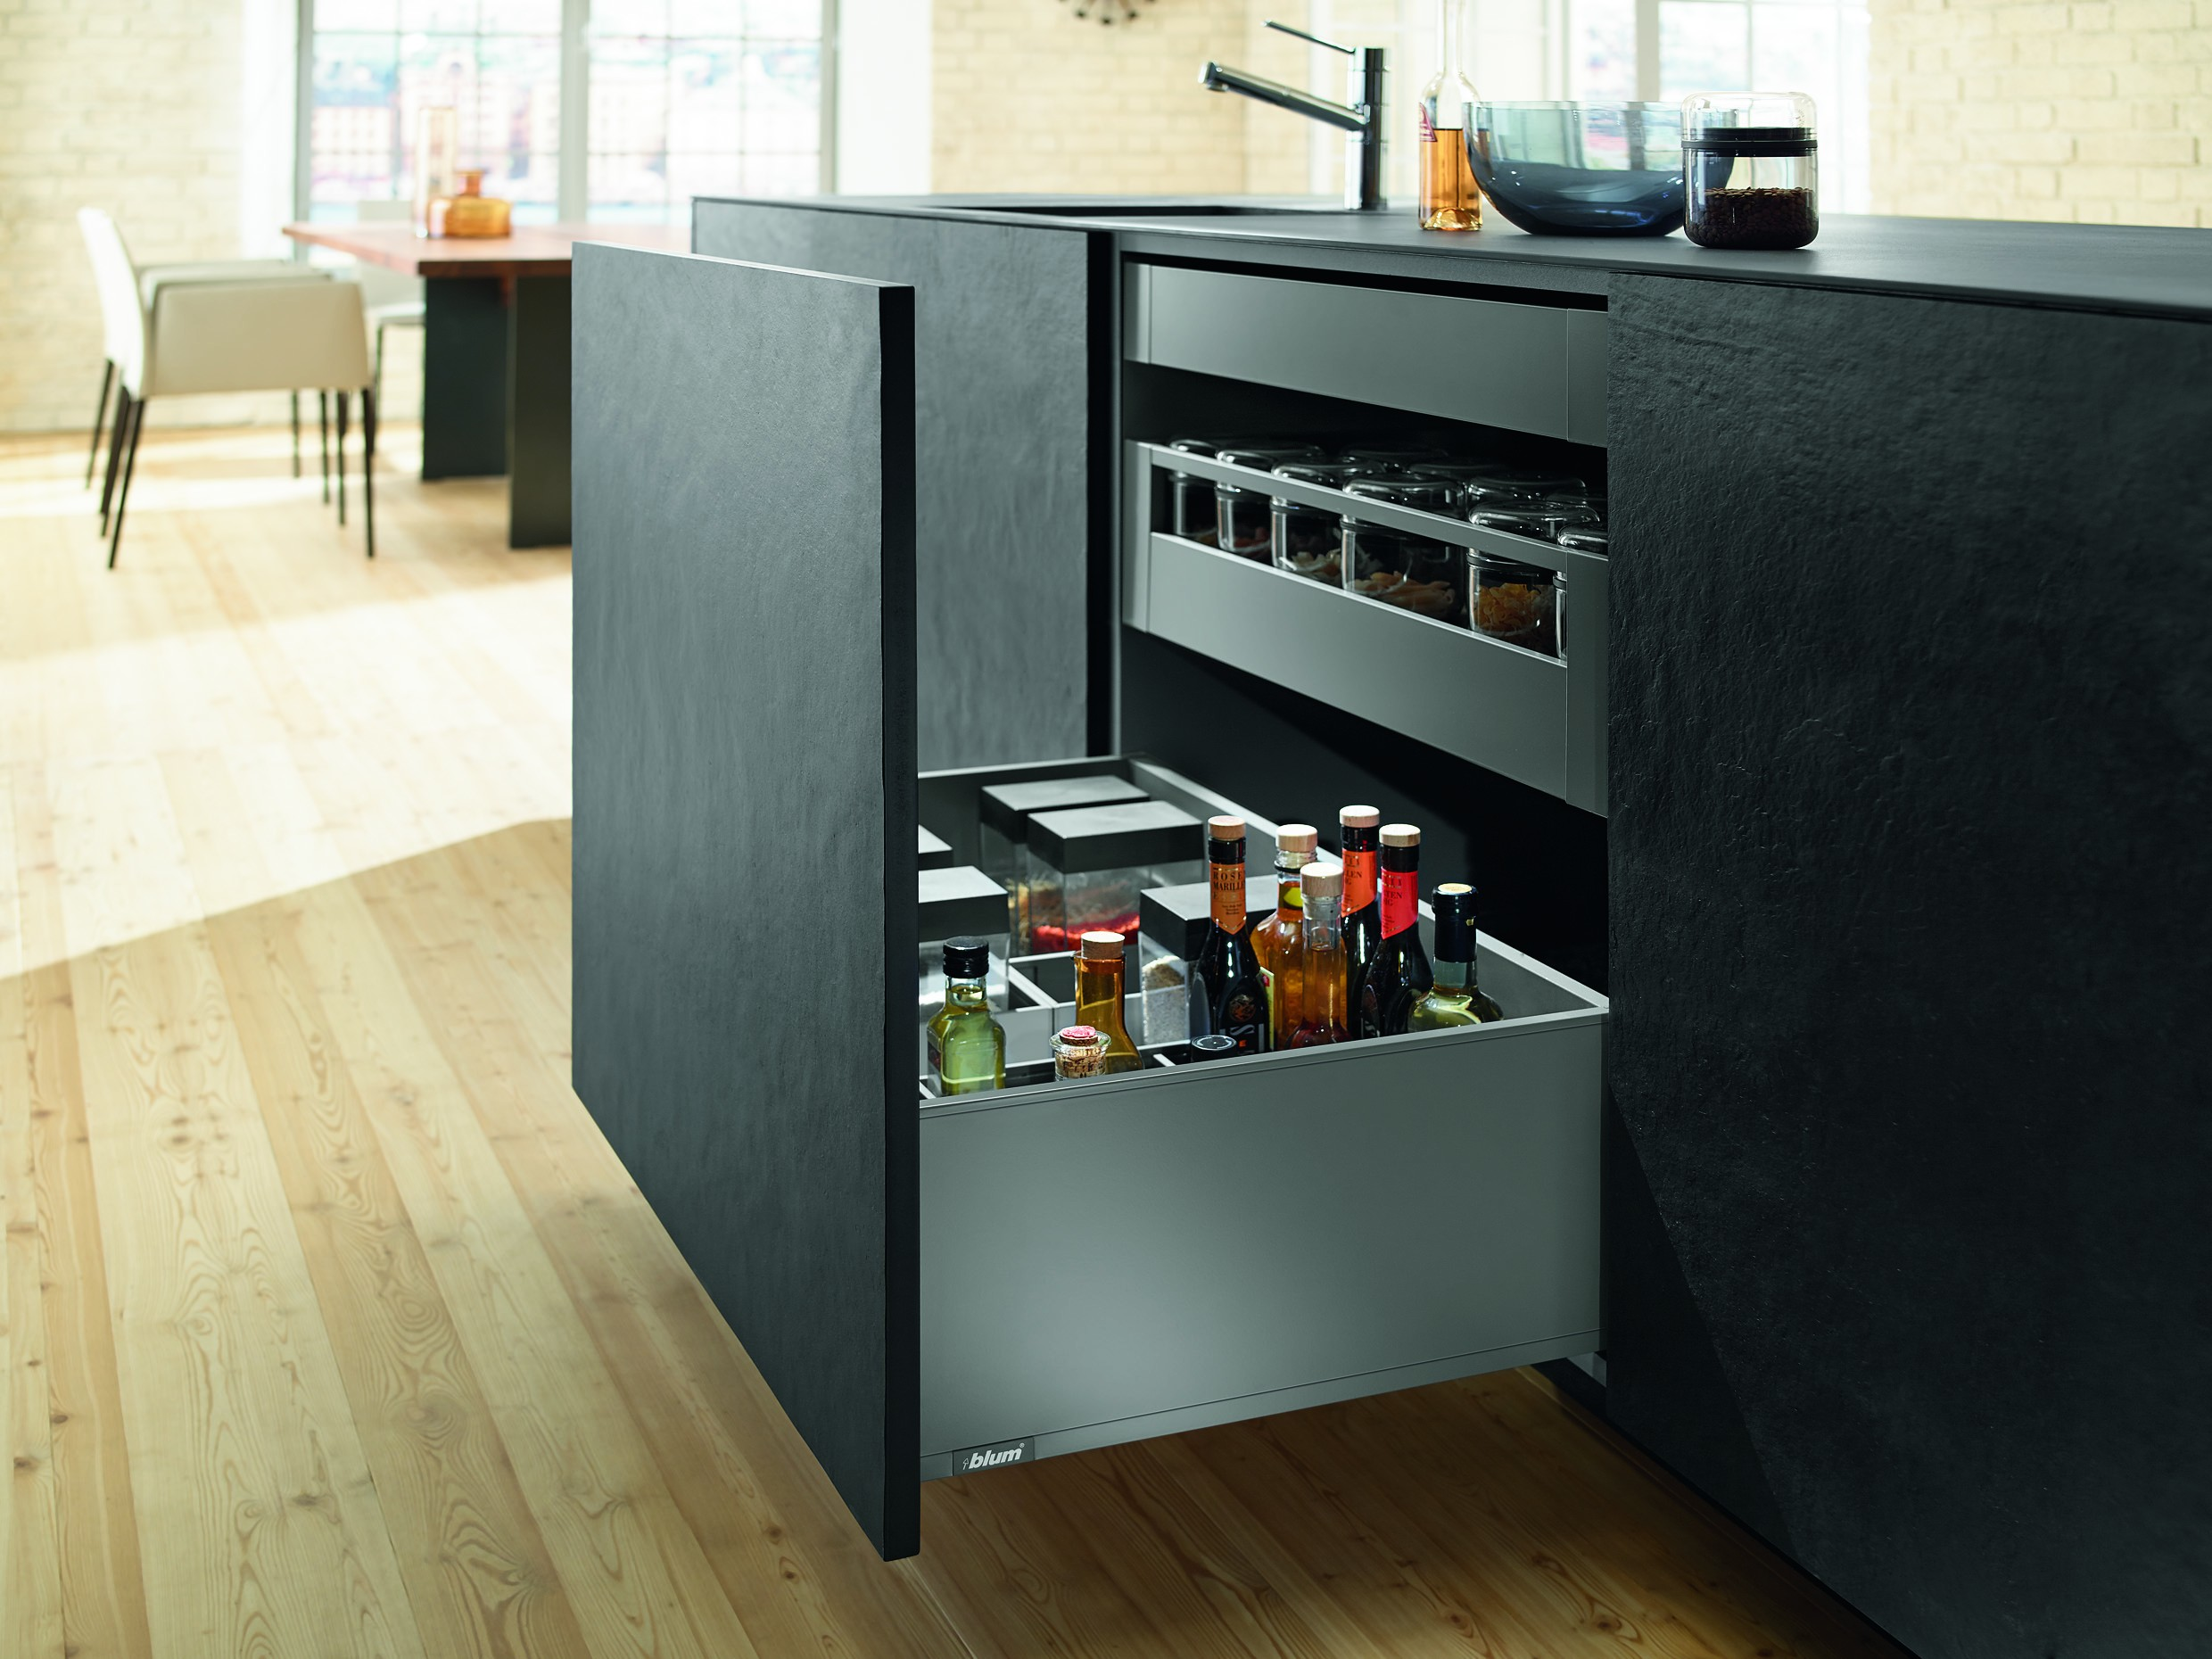 770F5002S - LEGRABOX pure : Extragere cu front inalt, inaltime F, lungime 500 mm